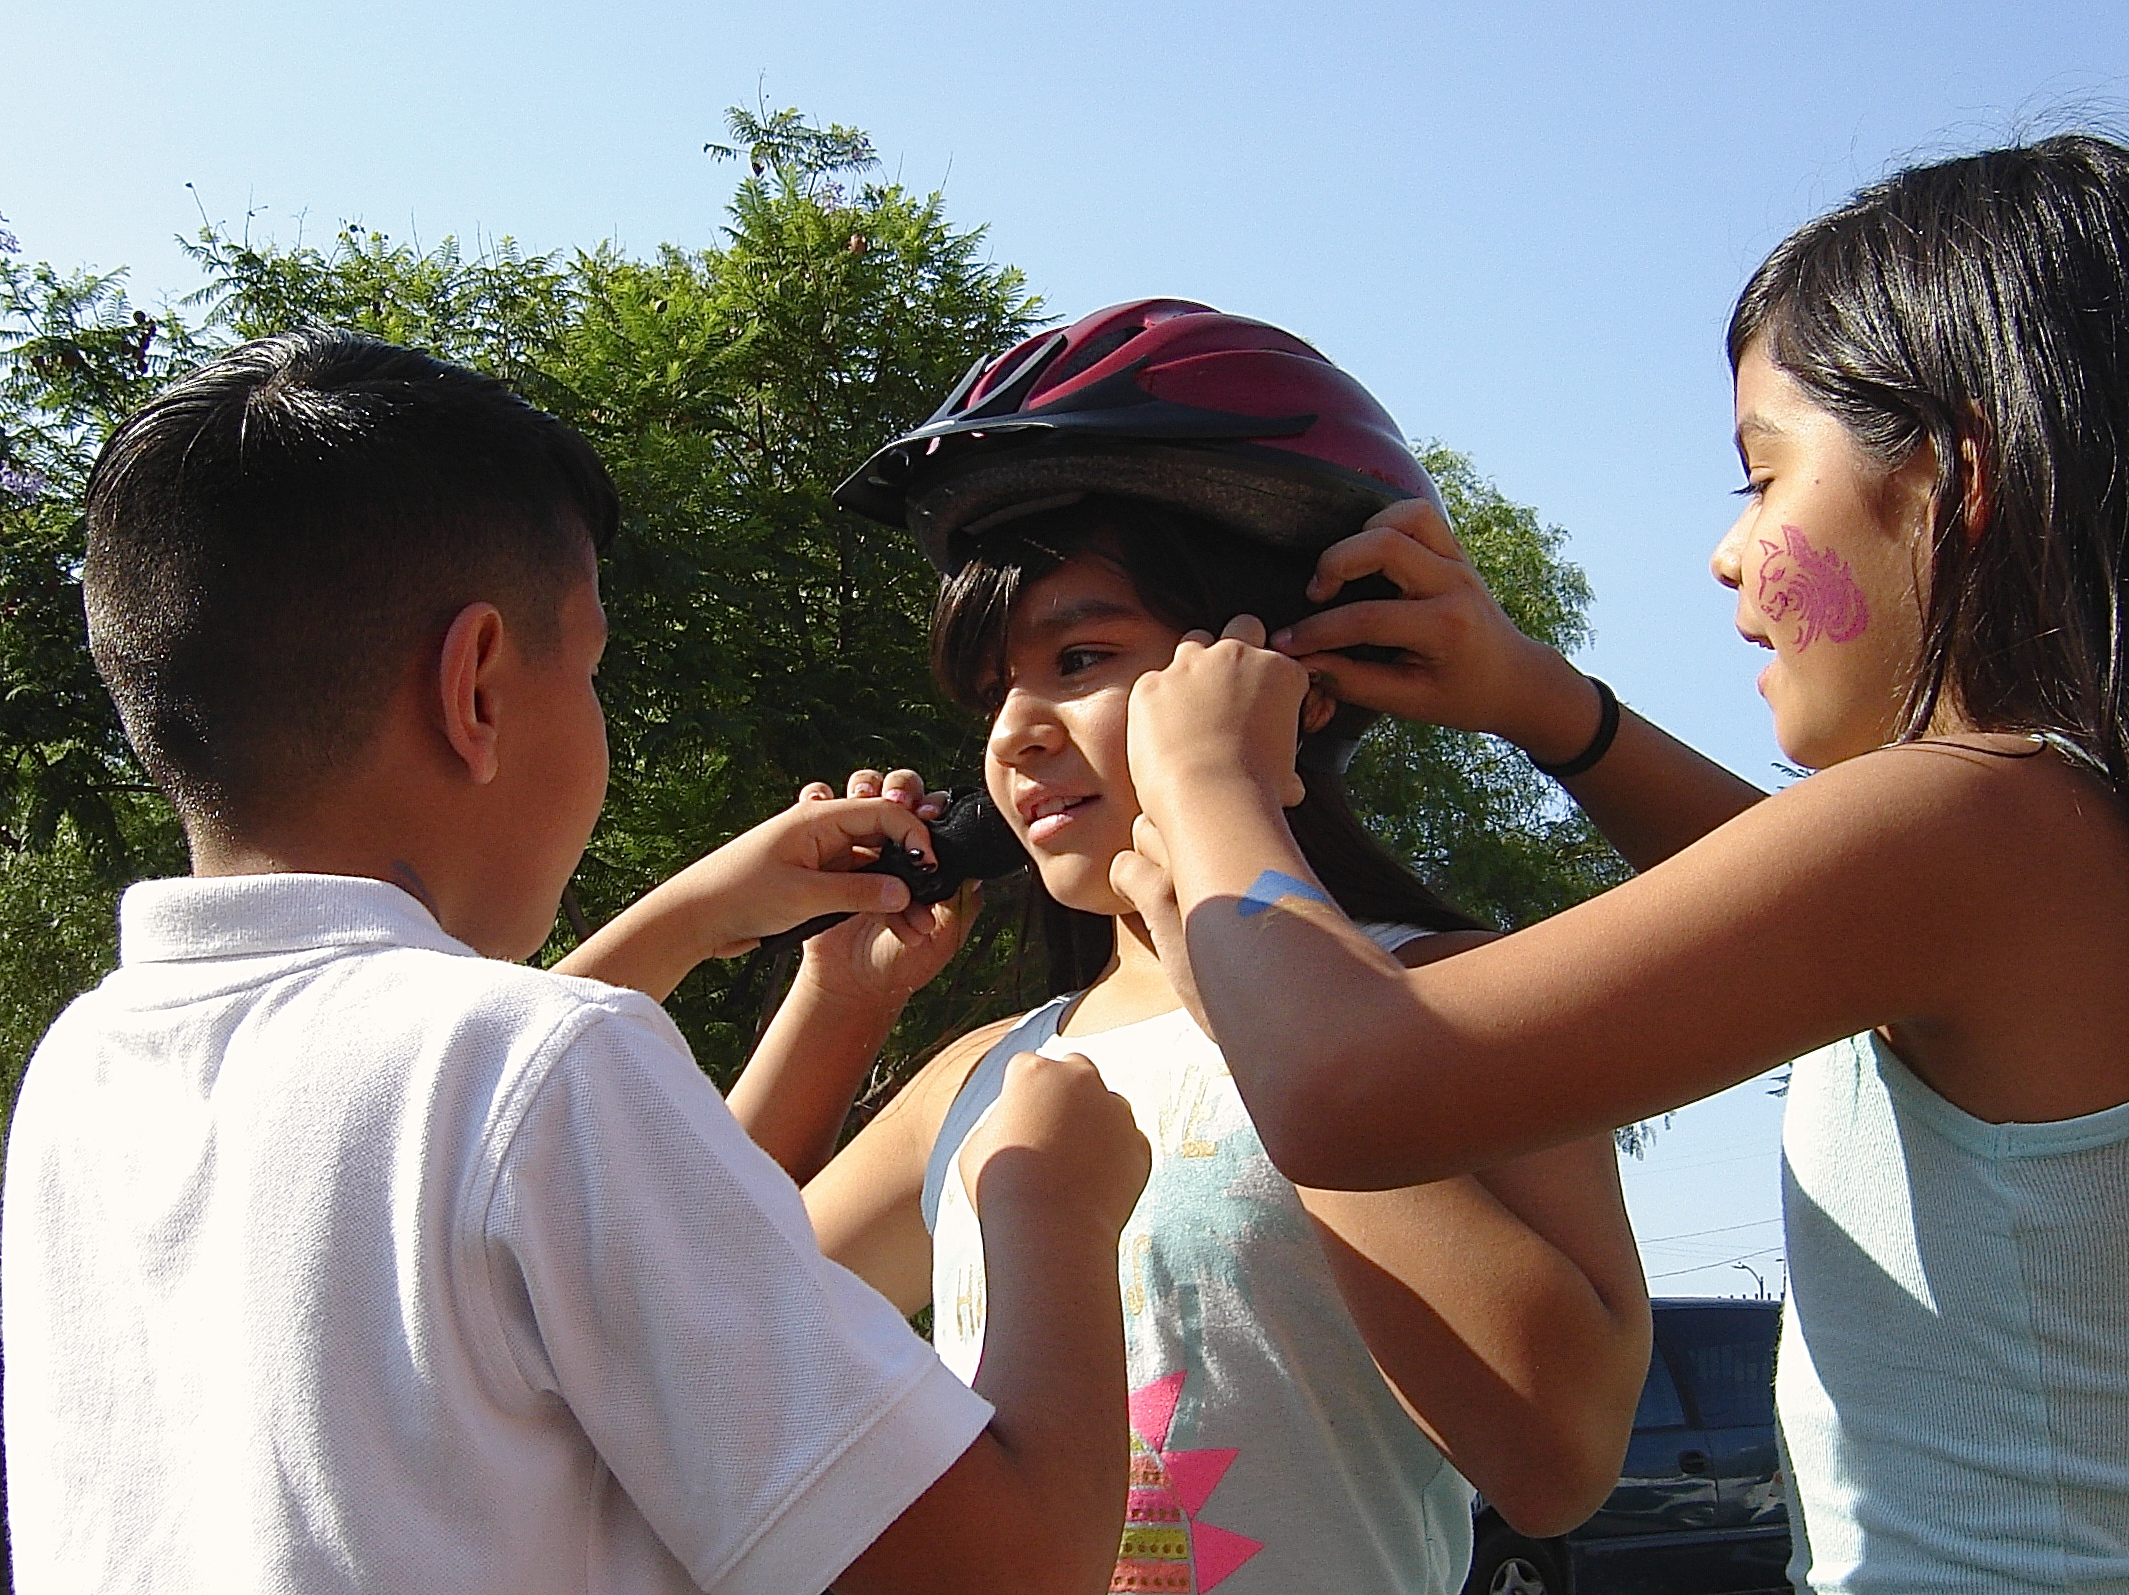 Kids practice putting on a helmet with tips they learned from Multicultural Communities for Mobility. Sahra Sulaiman/Streetsblog L.A.